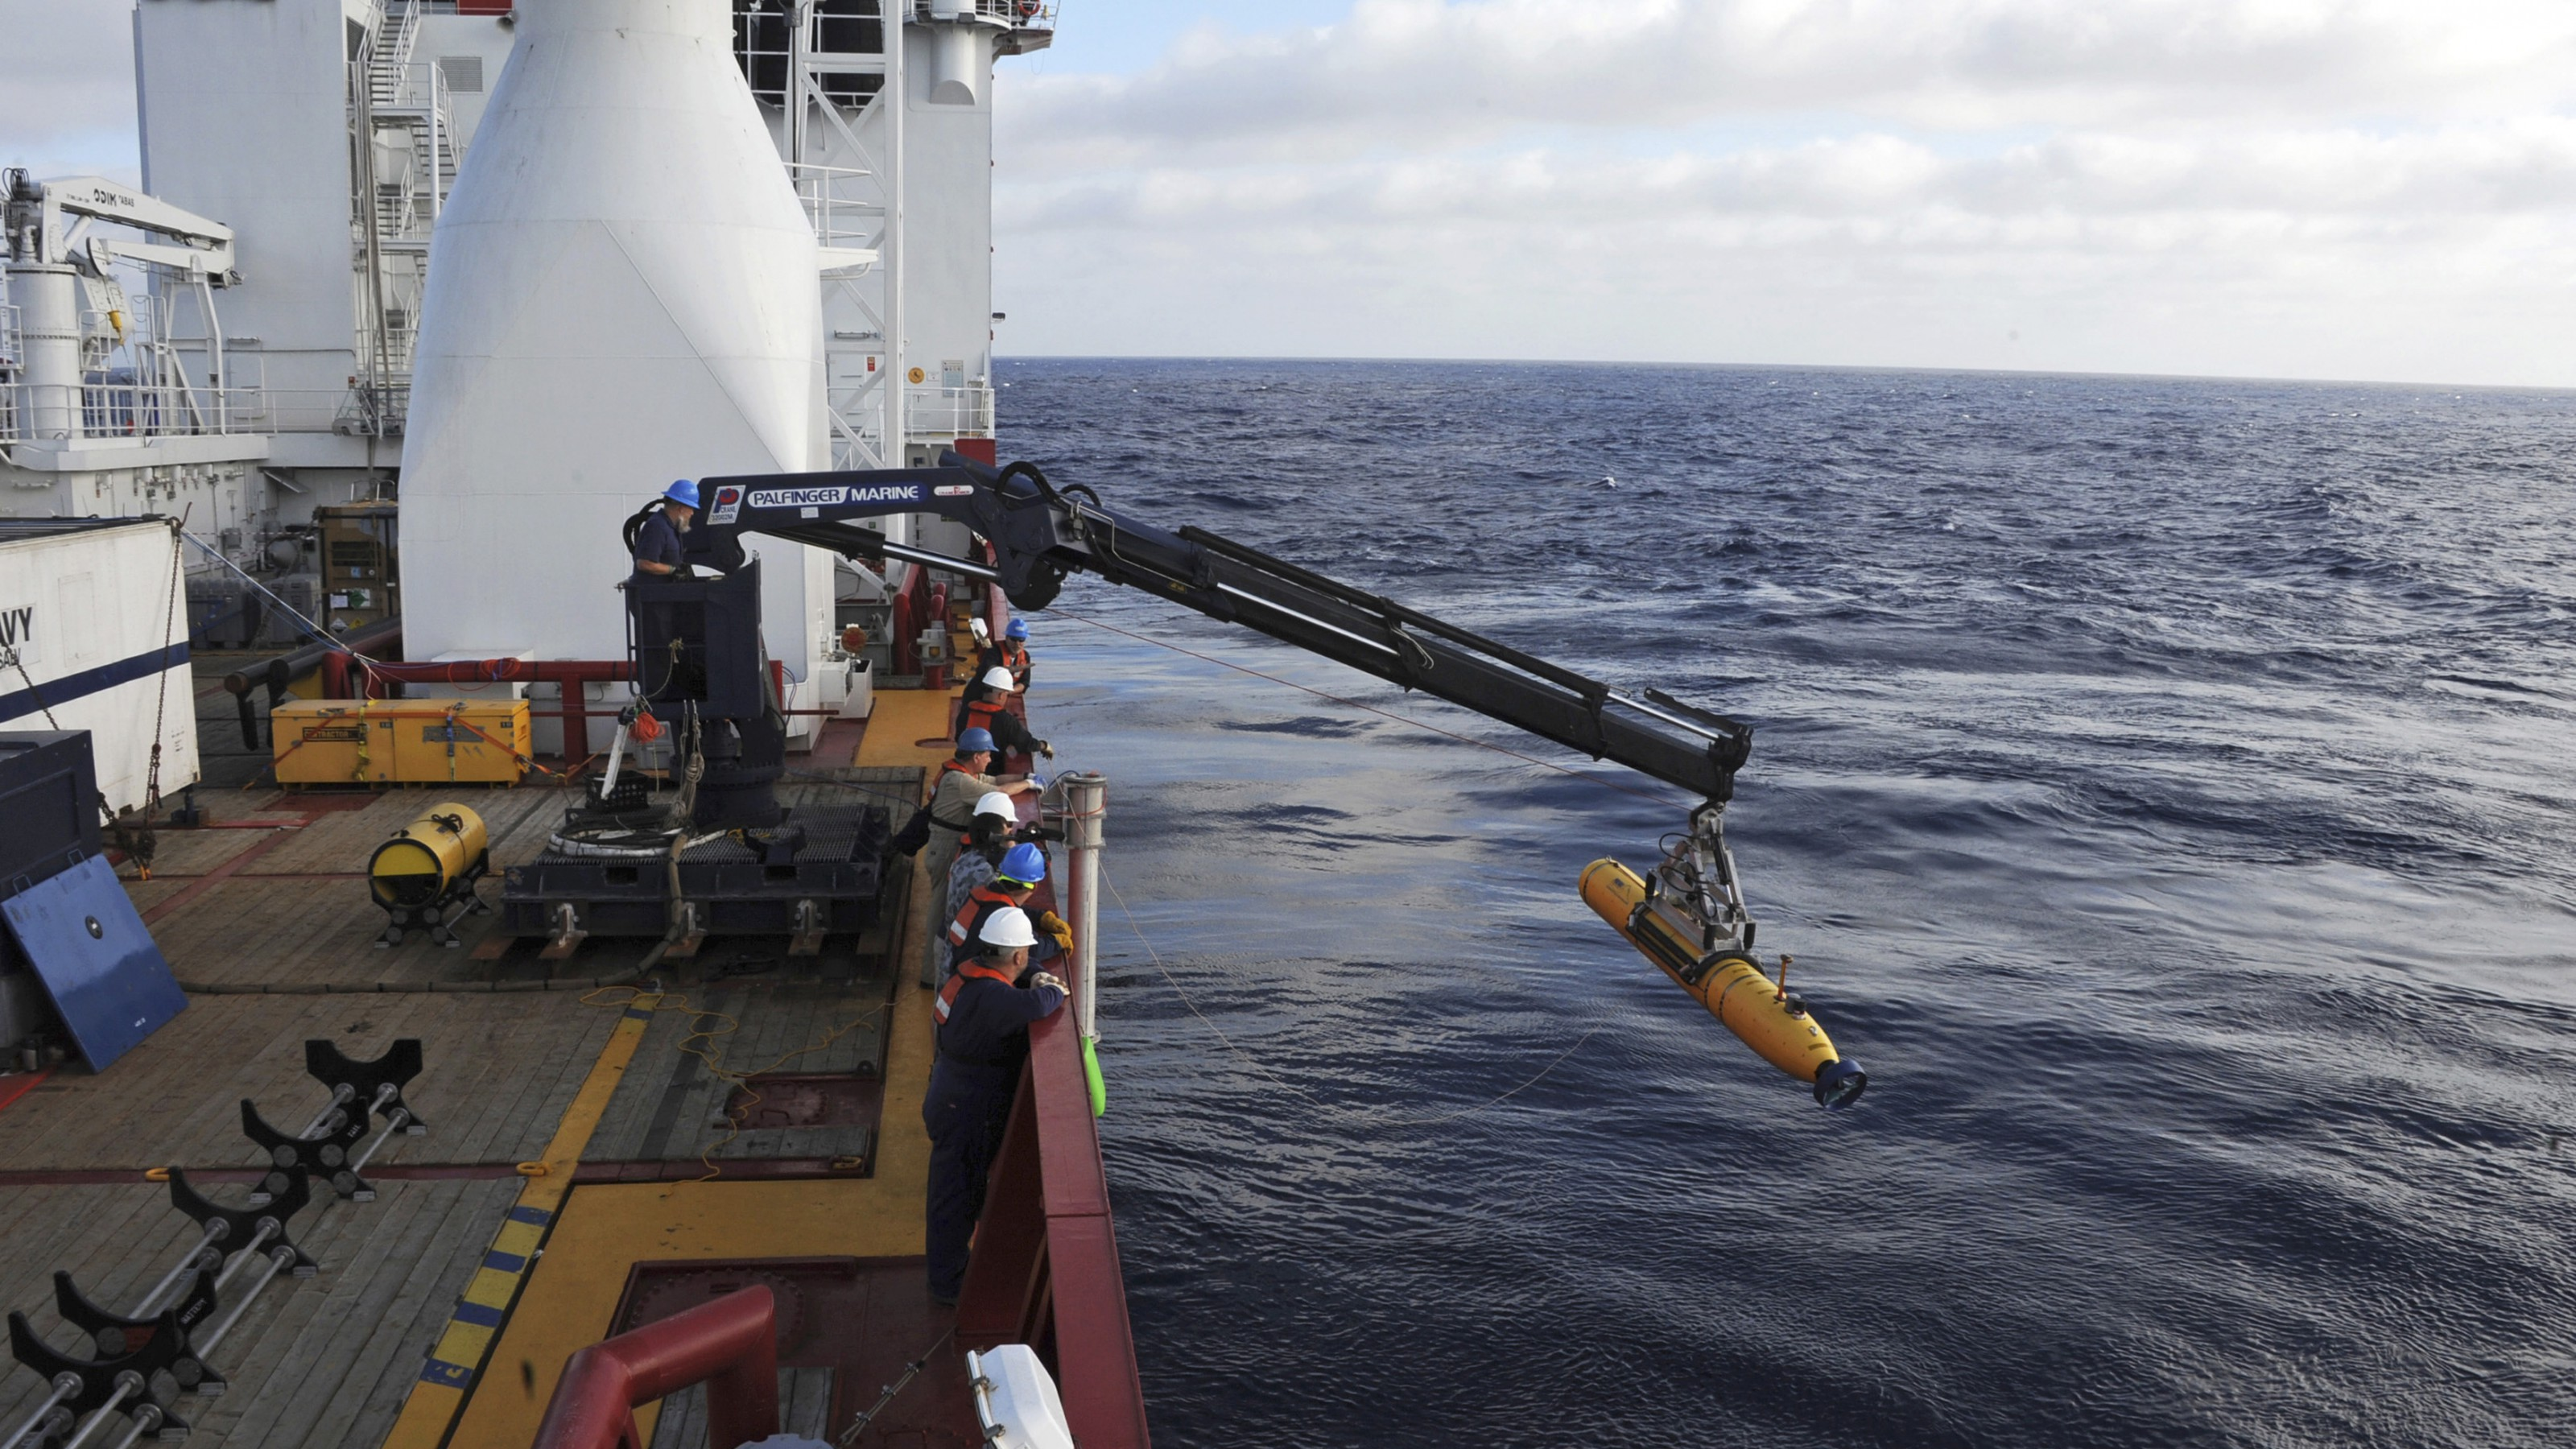 Operators aboard the Australian Defense Vessel Ocean Shield move the U.S. Navy's Bluefin 21 autonomous underwater vehicle into position for deployment in the Southern Indian Ocean, as the search continues for the missing Malaysia Airlines Flight 370, in this handout picture taken April 14, 2014.  Using side scan sonar, the Bluefin will descend to a depth of between 4,000 and 4,500 meters (13,125 to 14,750 feet), approximately 35 meters (115 feet) above the ocean floor, according to a U.S. Navy news release. Picture taken April 14, 2014.  REUTERS/U.S. Navy/Mass Communication Specialist 1st Class Peter D. Blair/Handout via Reuters (MID-SEA - Tags: MILITARY DISASTER) ATTENTION EDITORS - THIS IMAGE WAS PROVIDED BY A THIRD PARTY. FOR EDITORIAL USE ONLY. NOT FOR SALE FOR MARKETING OR ADVERTISING CAMPAIGNS. THIS PICTURE IS DISTRIBUTED EXACTLY AS RECEIVED BY REUTERS, AS A SERVICE TO CLIENTS - RTR3LEUS